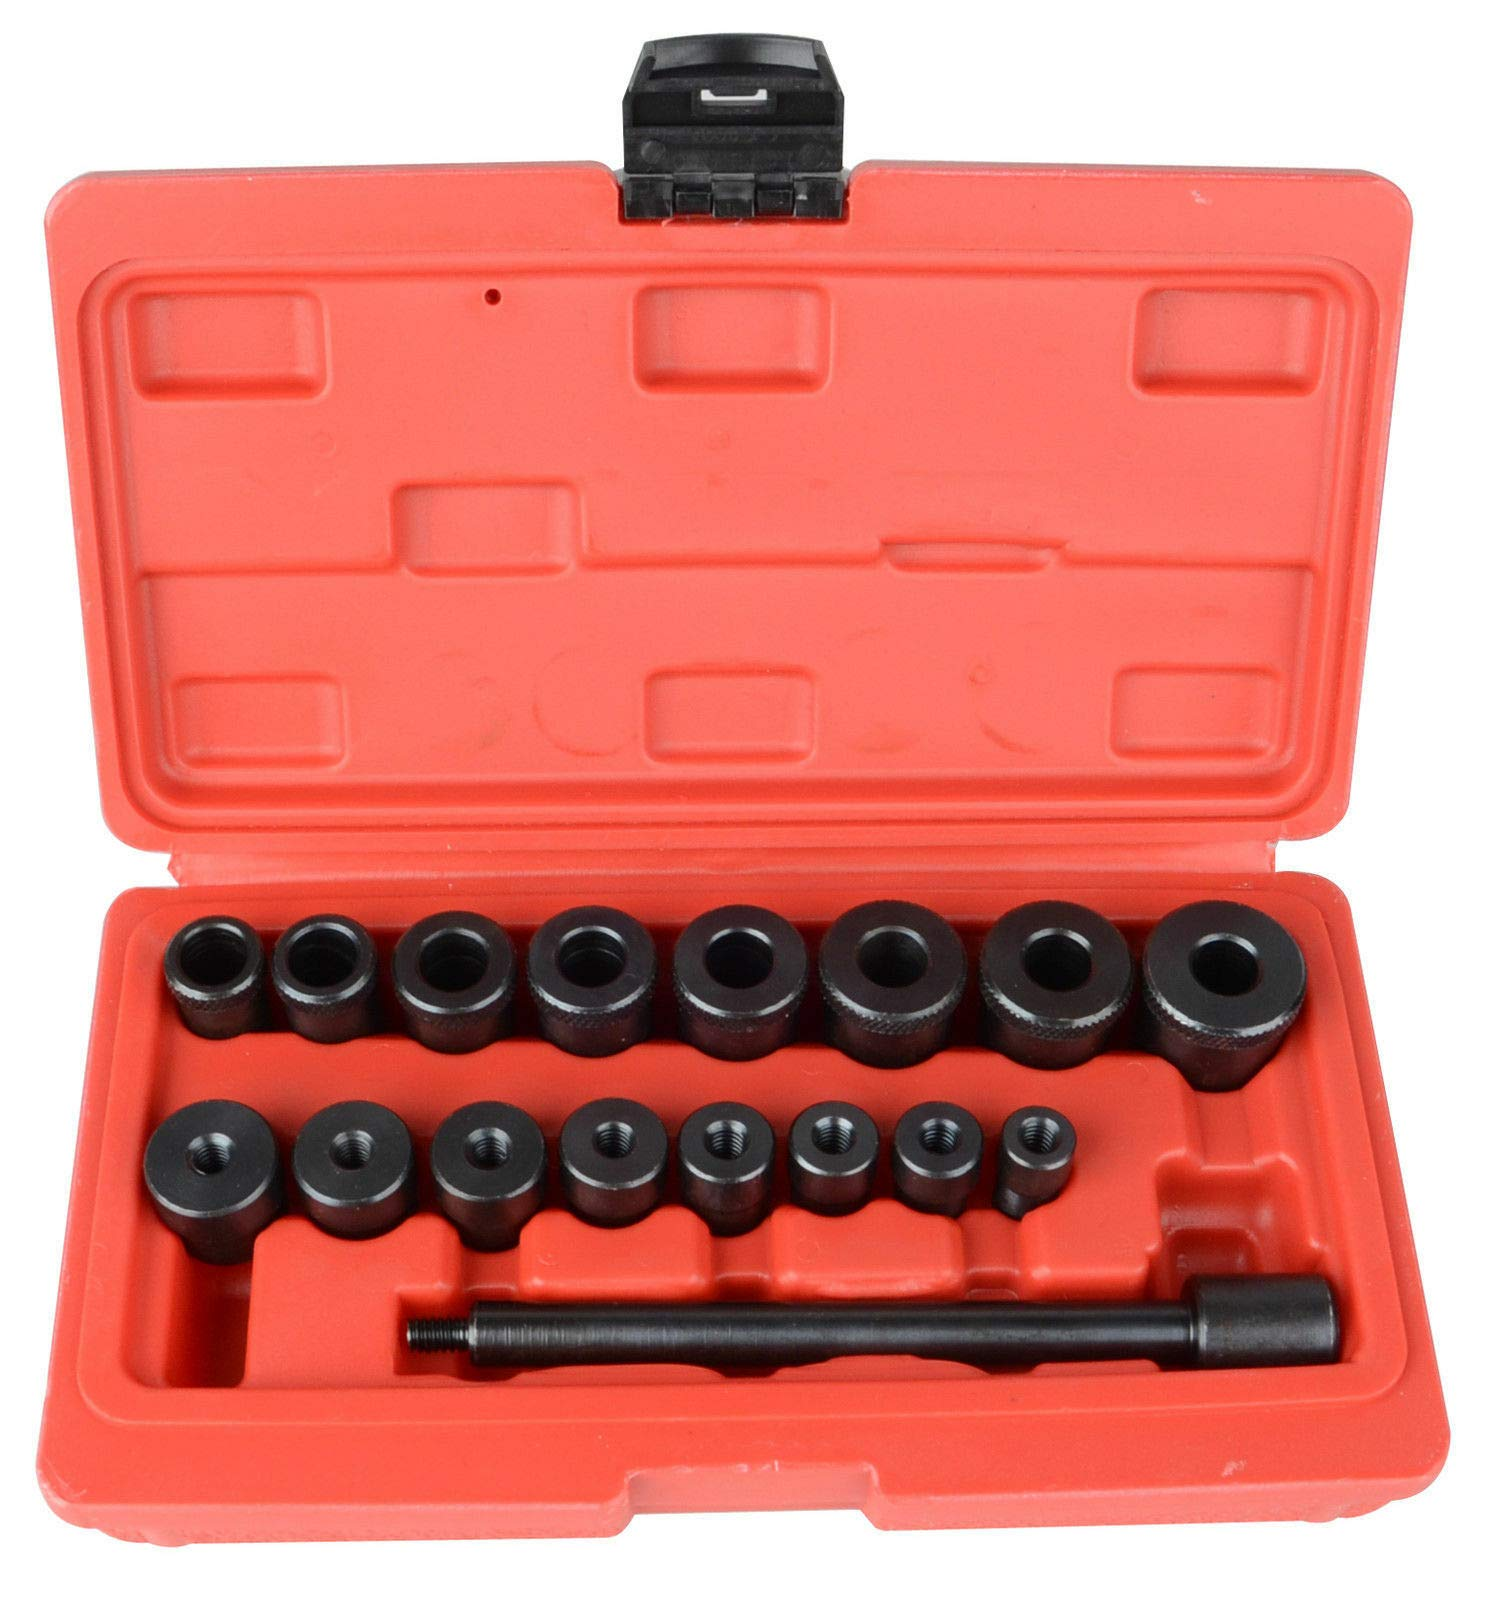 OWLDC 17pcs/set Clutch Alignment Tool Kit Aligning Universal For All Cars